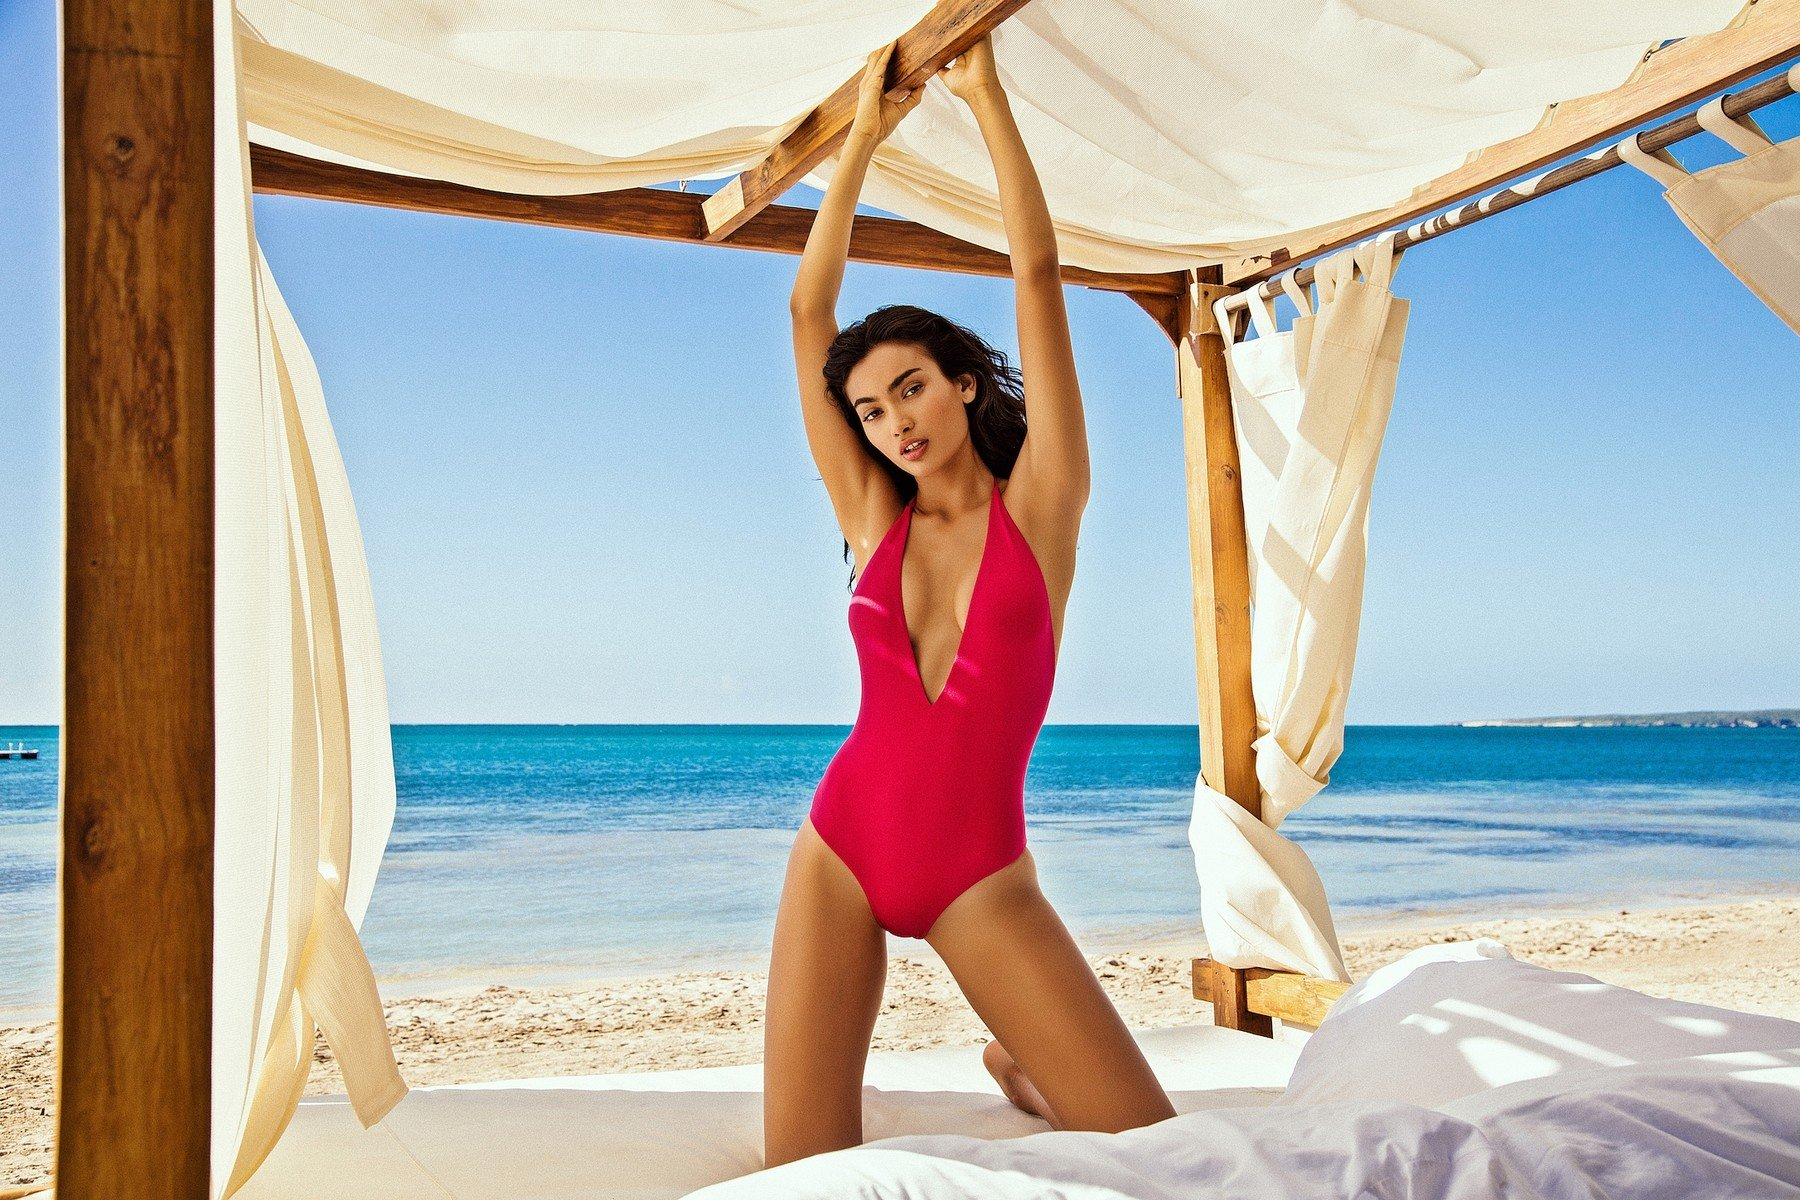 Shes posed for some of the hottest brands and mags on the planet  and for her latest turn, Australian-Swedish-Indian model Kelly Gale looks out of this world. The 23-year-old Chanel, Victorias Secret and Sports Illustrated Swimsuit star has now been snapped up by Italian brand Yamamay, and is seen here duly modeling some swimsuits from the summer 2018 collection. Posing in front of palm trees, the ocean in the background, and sitting on a wooden dock, Kelly strike some seriously sexy poses for the Puerto Rico campaign, which is also raising awareness about the environment with a #savetheocean hashtag. And if we are to expect more shots of Kelly posing in her bikini by the ocean, then its certainly worth saving. 30 May 2018, Image: 373412034, License: Rights-managed, Restrictions: World Rights, Model Release: no, Credit line: Profimedia, Mega Agency